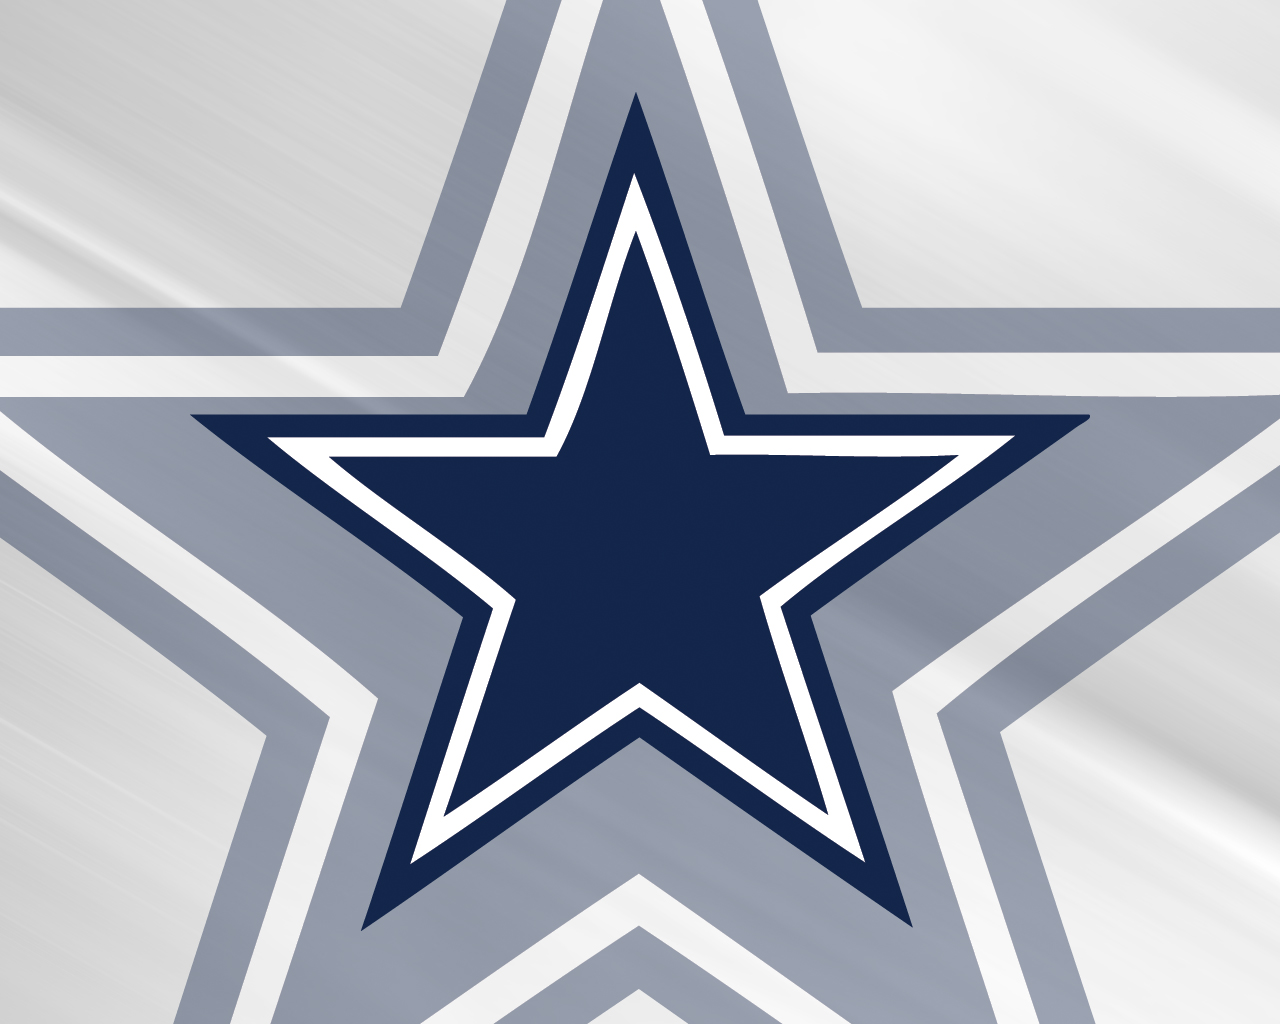 Dallas Cowboys Desktop Wallpaper